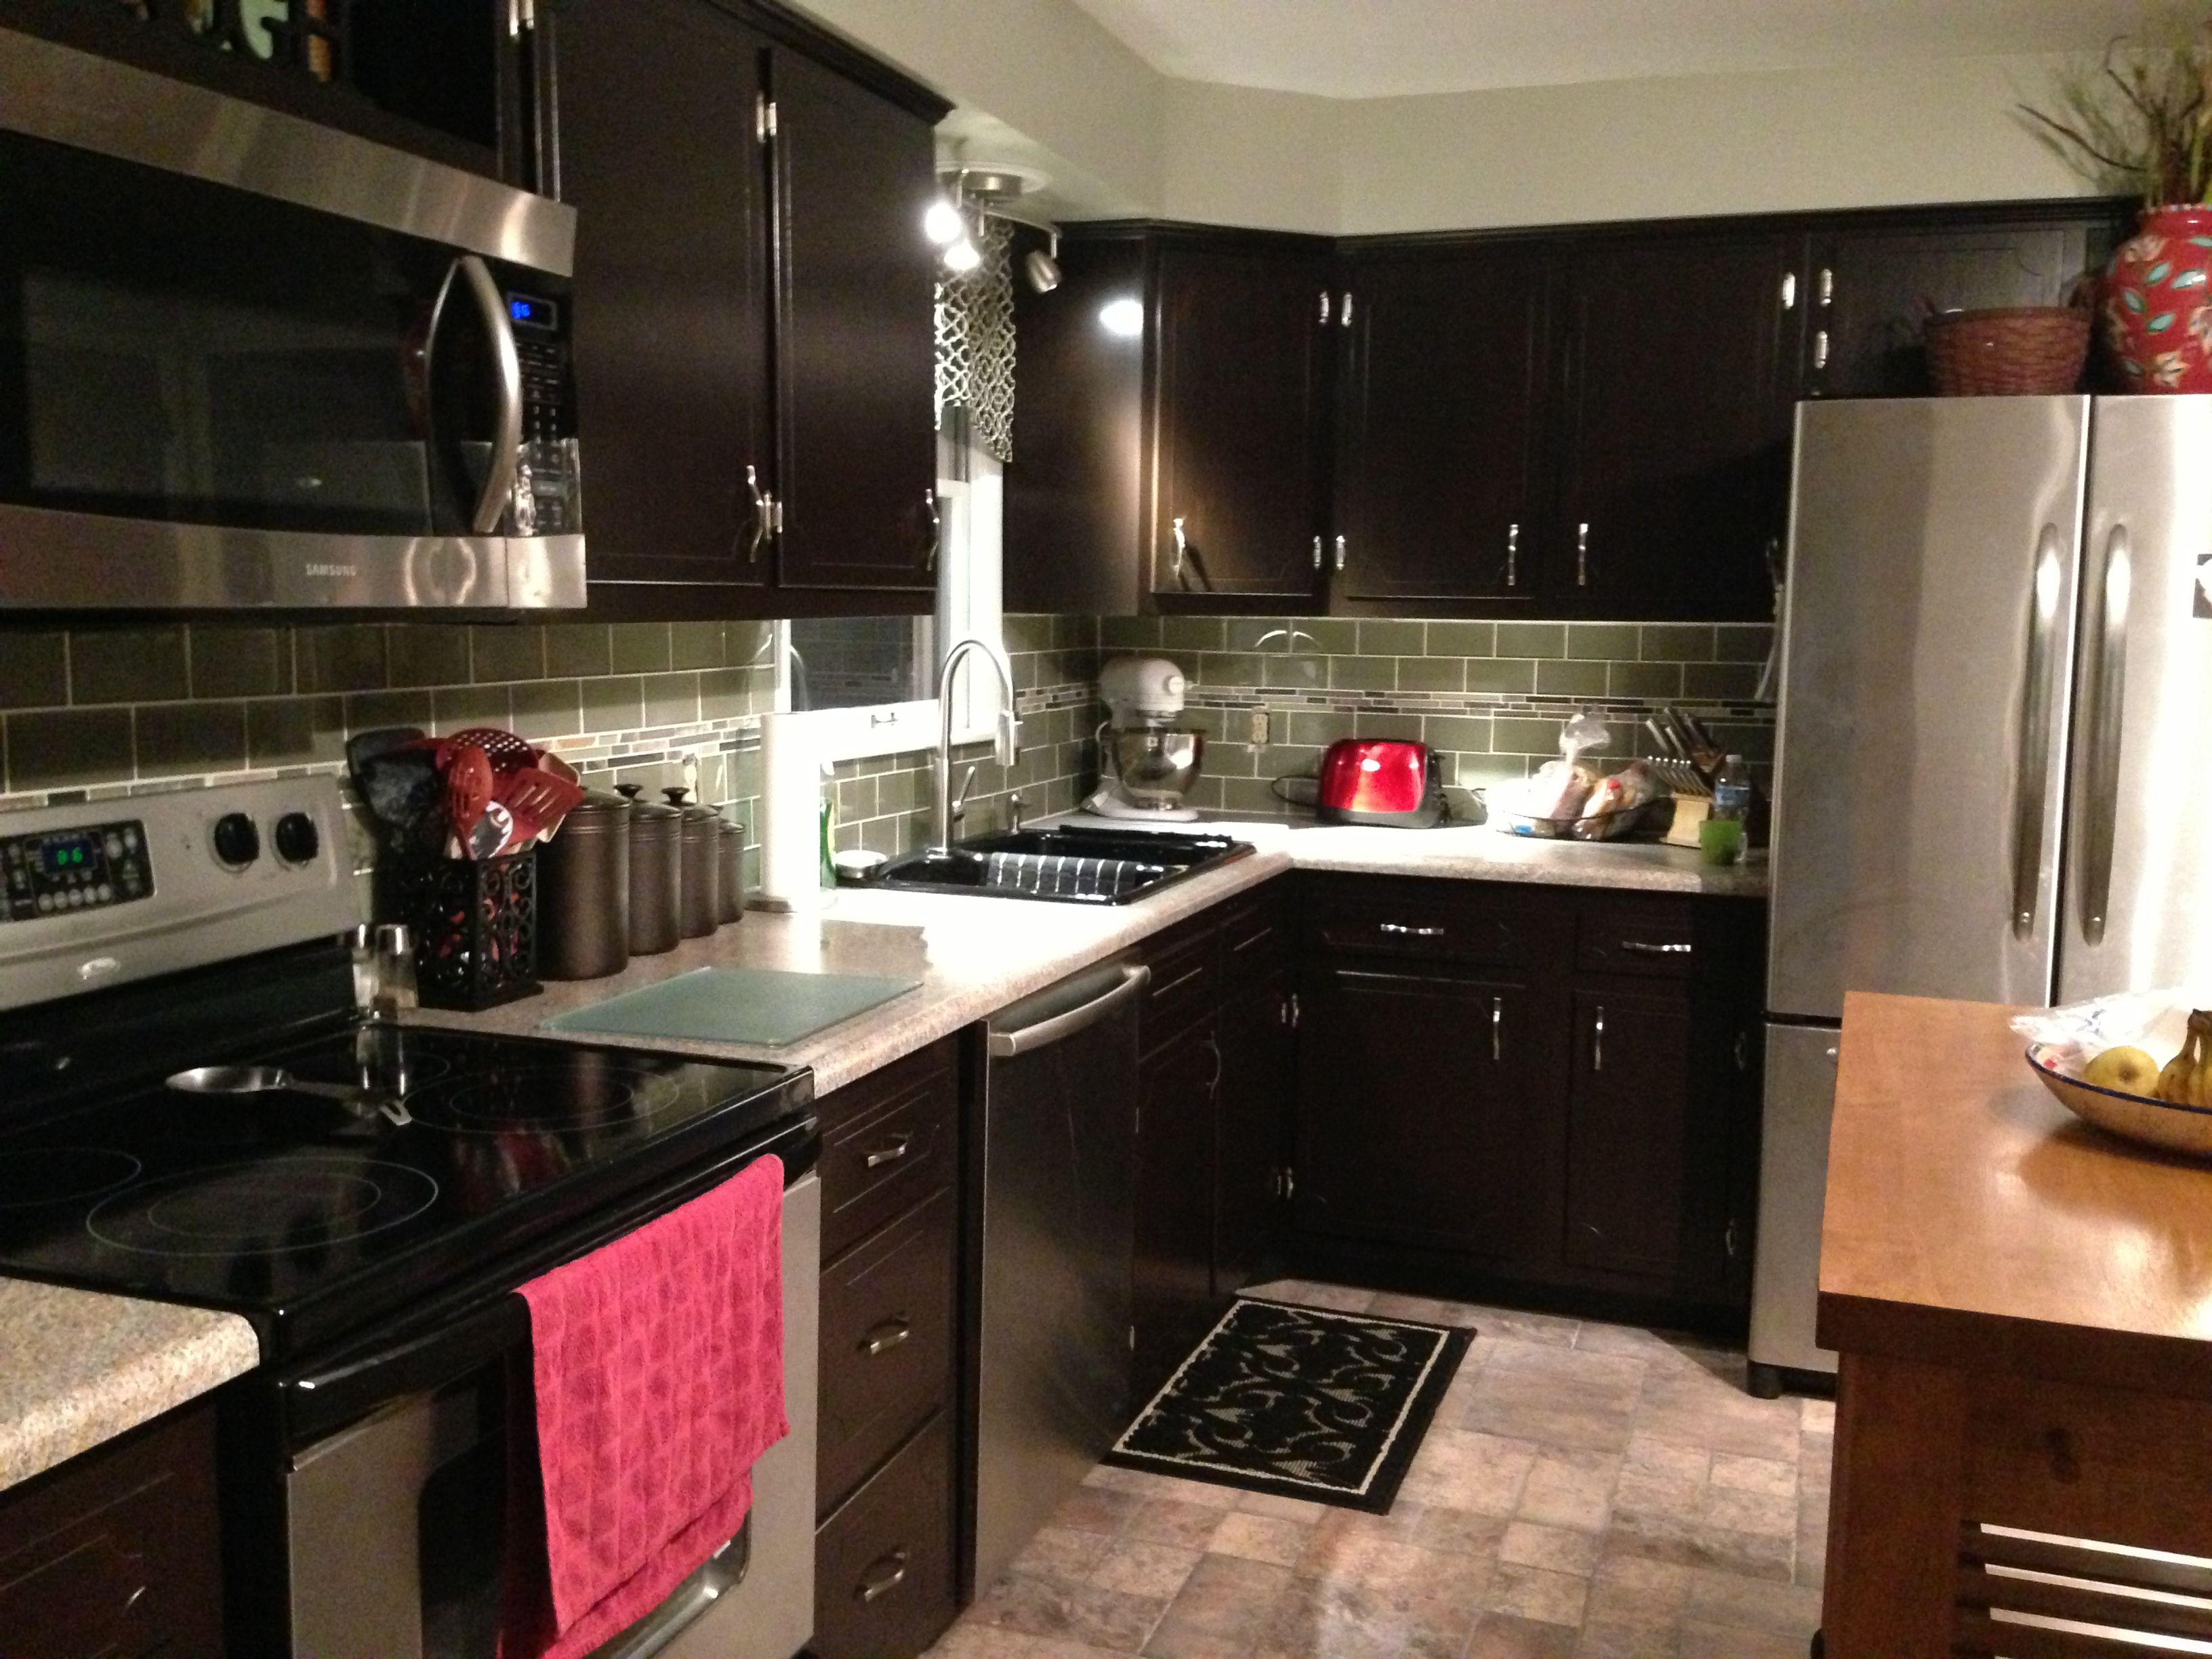 Kitchen Remodel Dark Cabinets kitchen remodel. java gel stain cabinets. backsplash glass subway